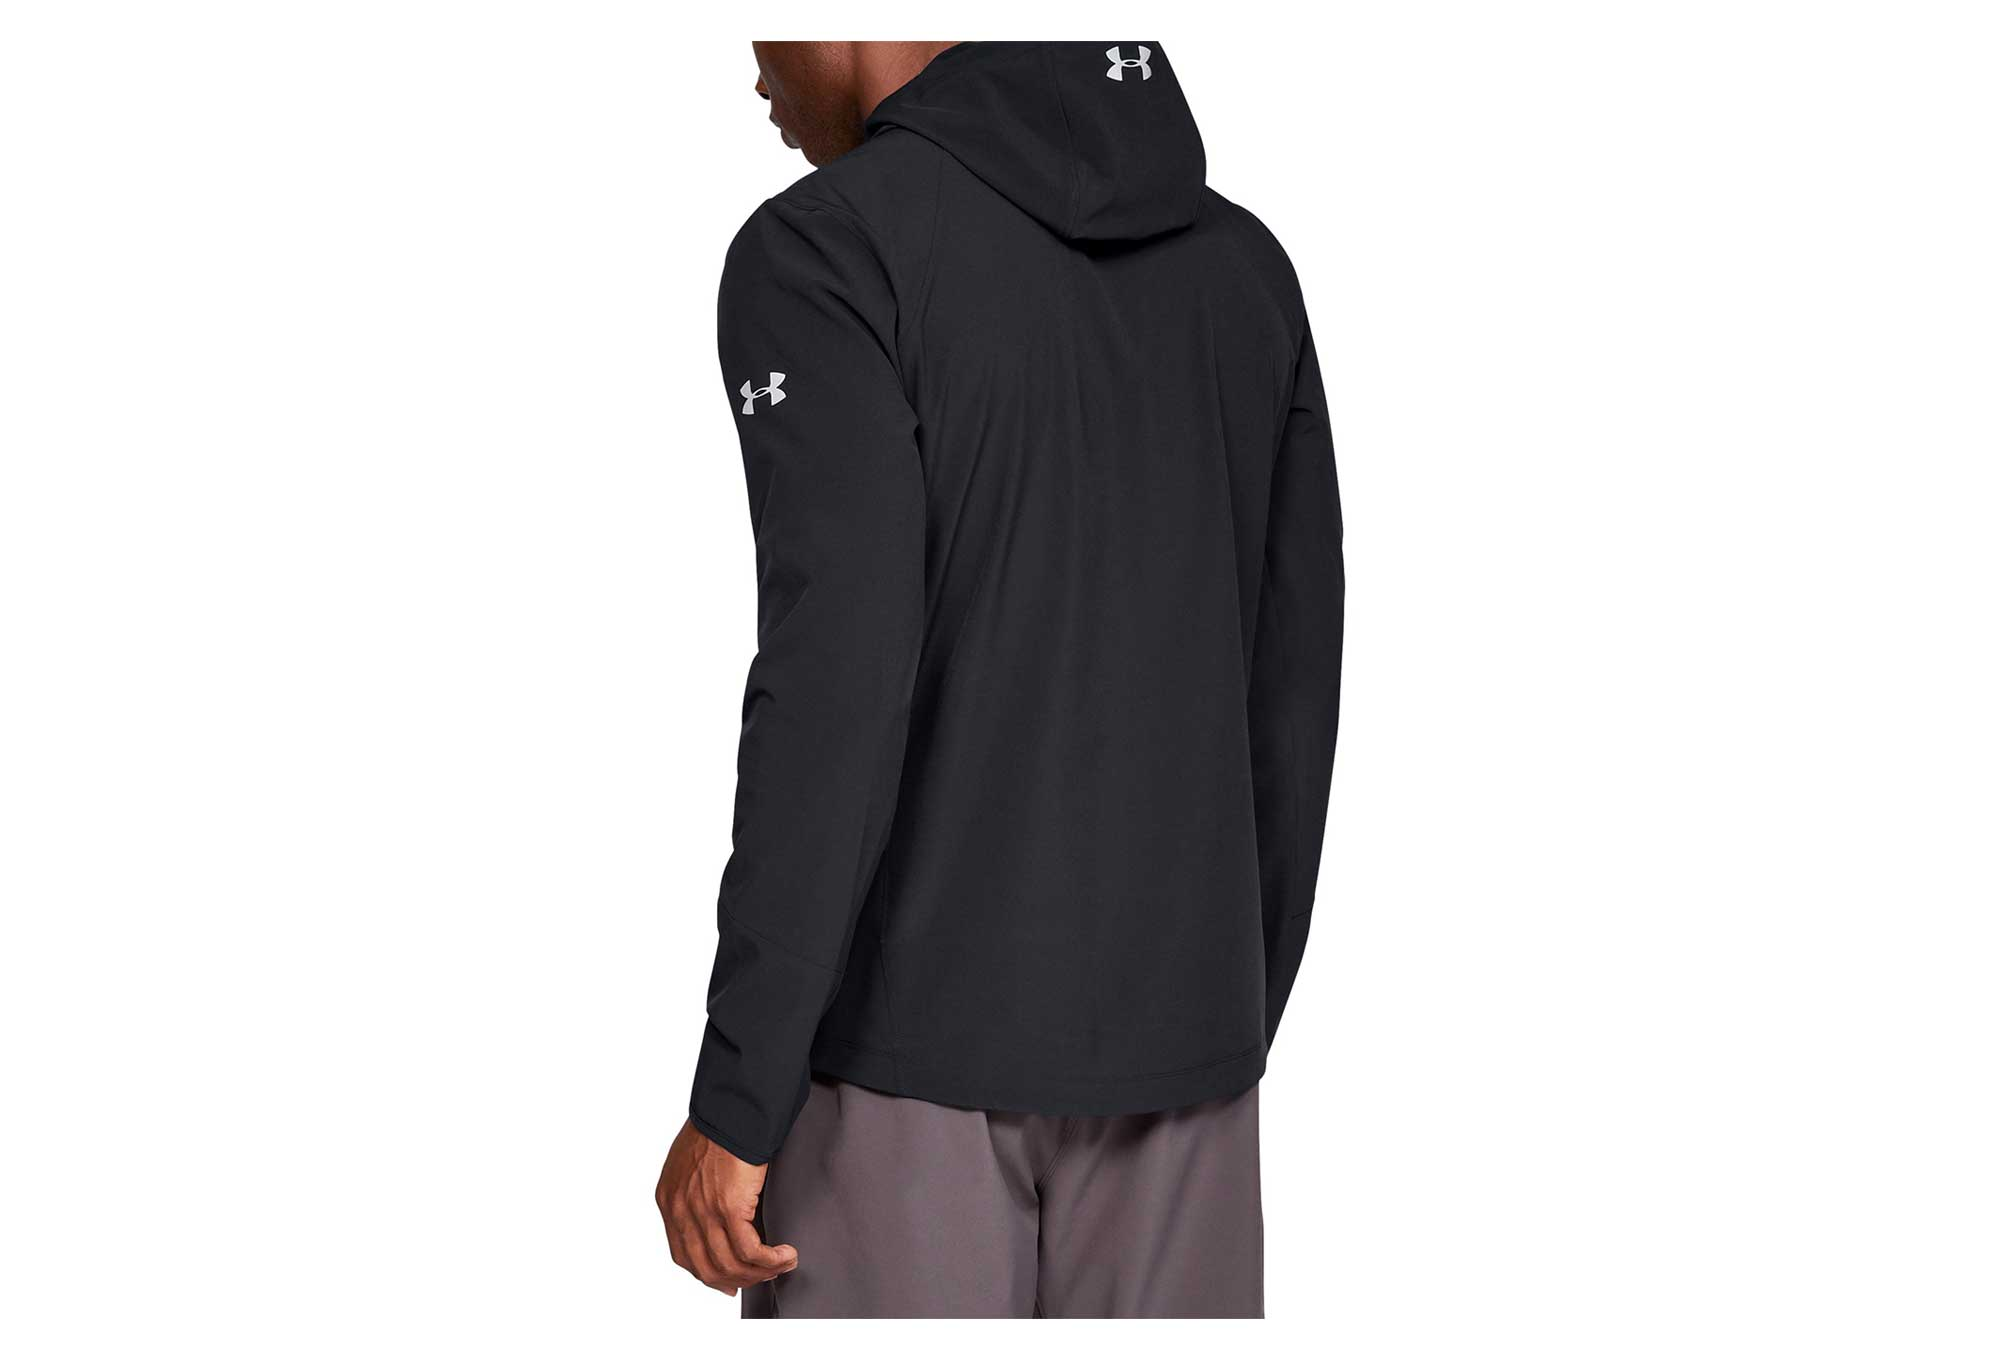 Under Armour Outrun The Storm Water Resistant Jacket Black